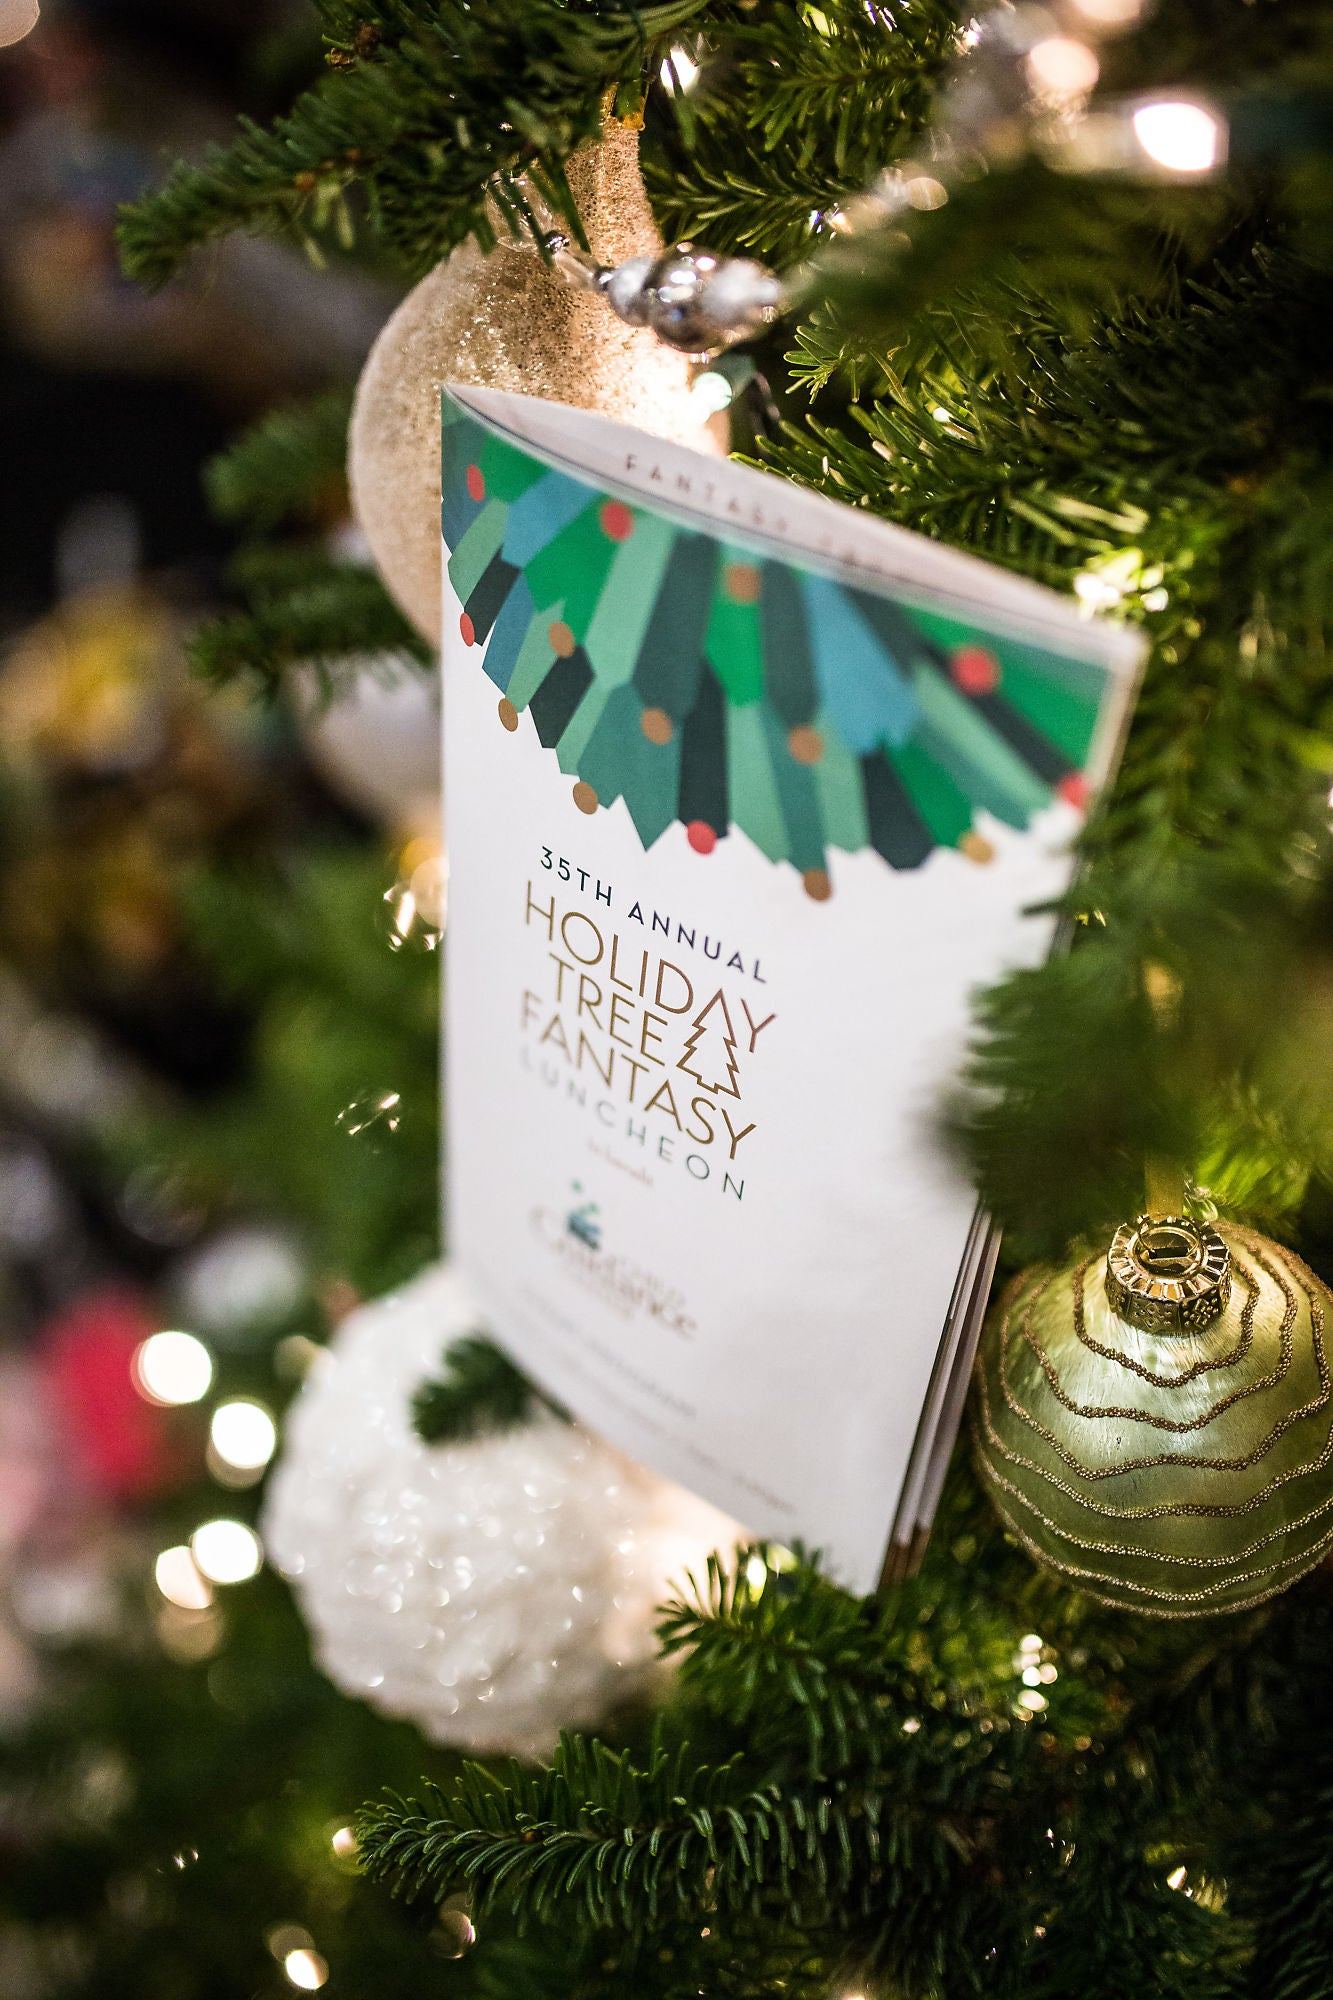 Holiday Tree Fantasy Brochure on Christmas tree, surrounded by ornaments